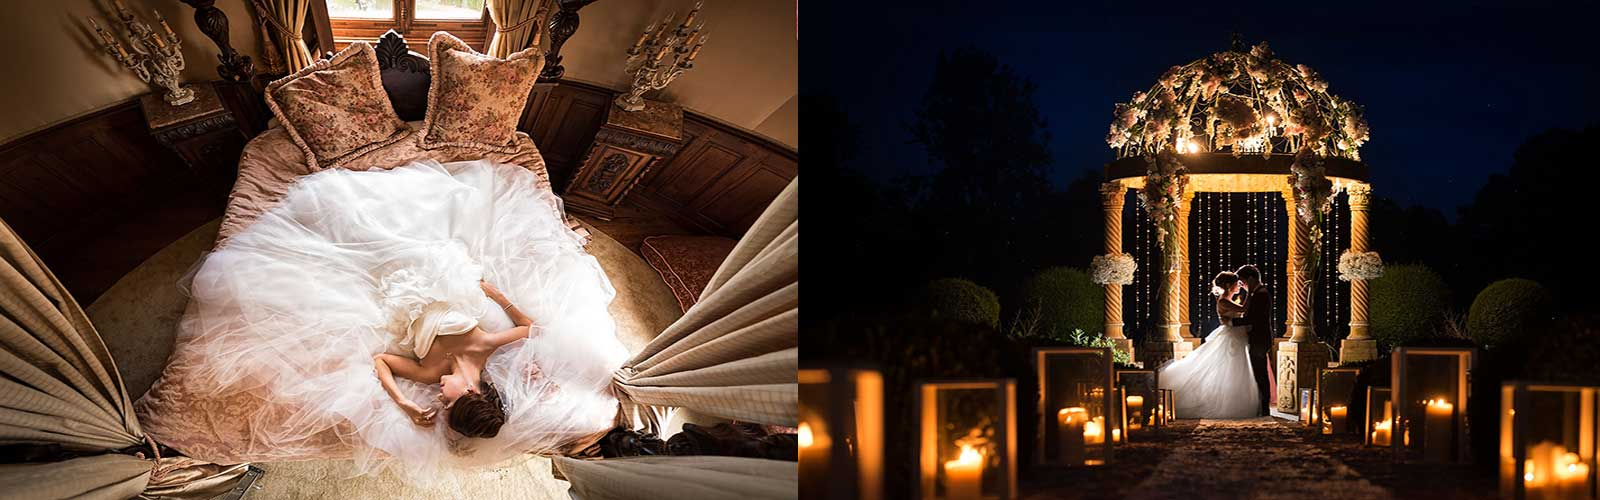 Chateau-destination-weddings-venue